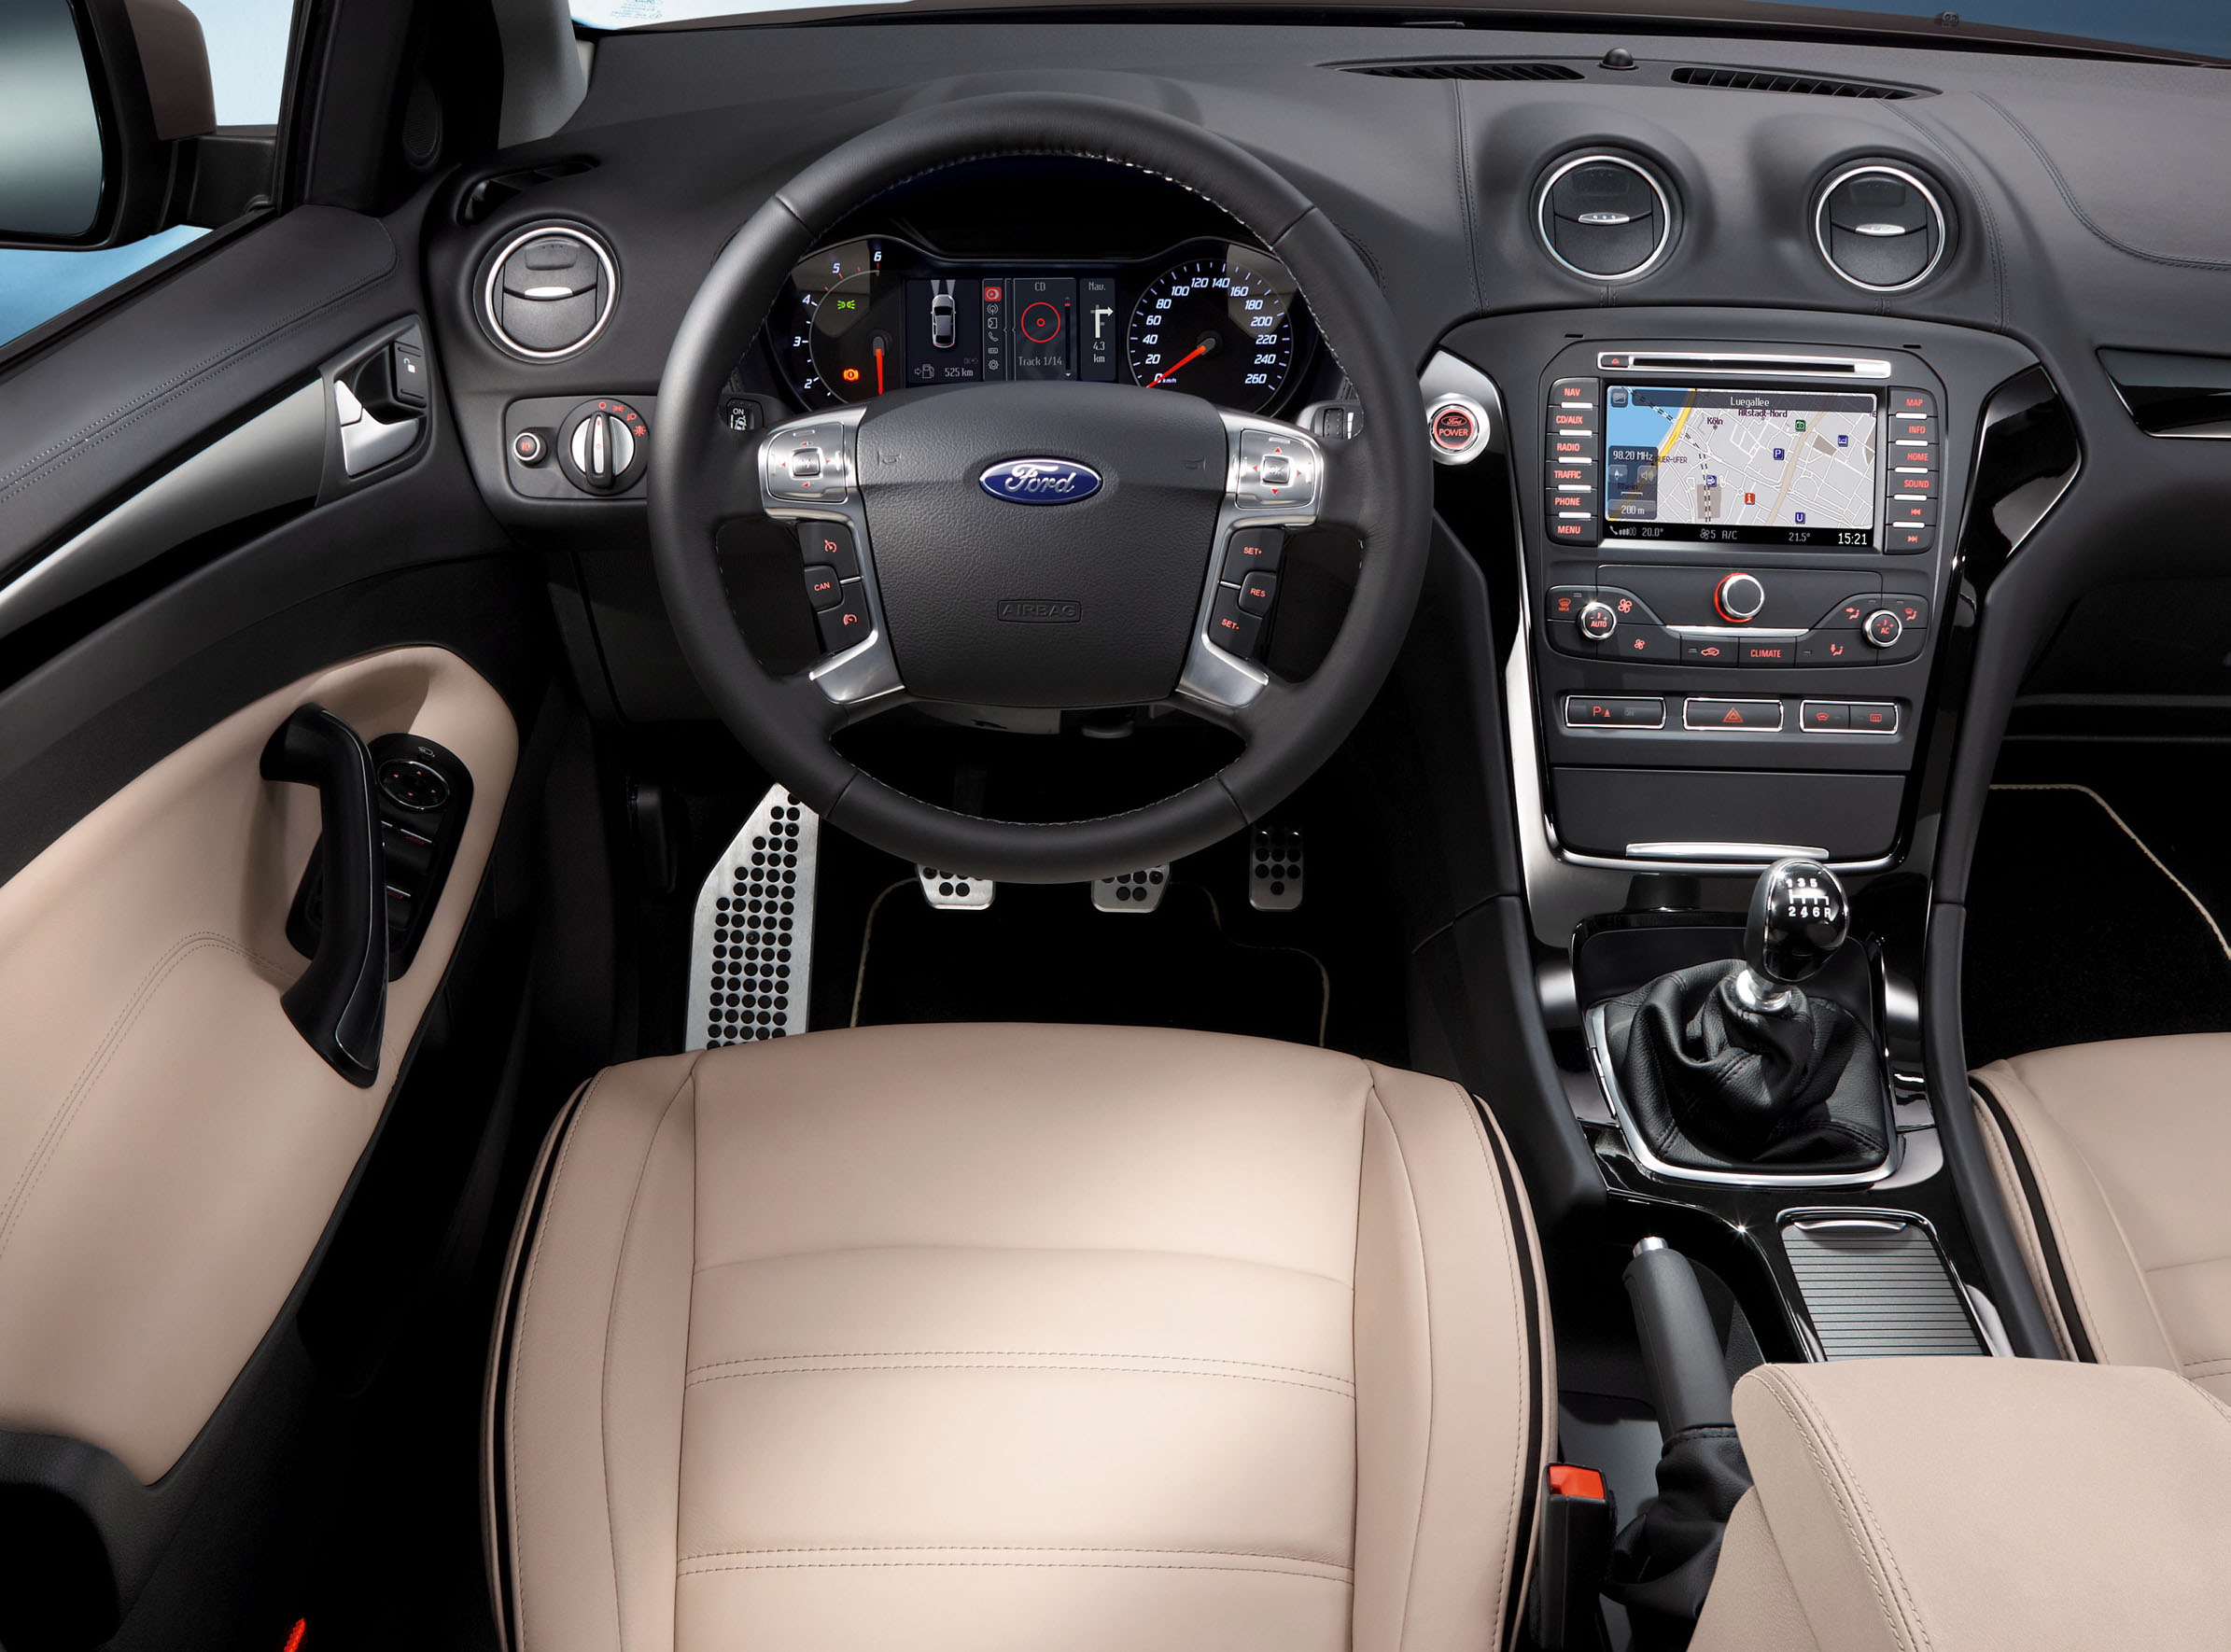 Ford Mondeo And S MAX Go 240 PS RM194k RM199k Image 105690